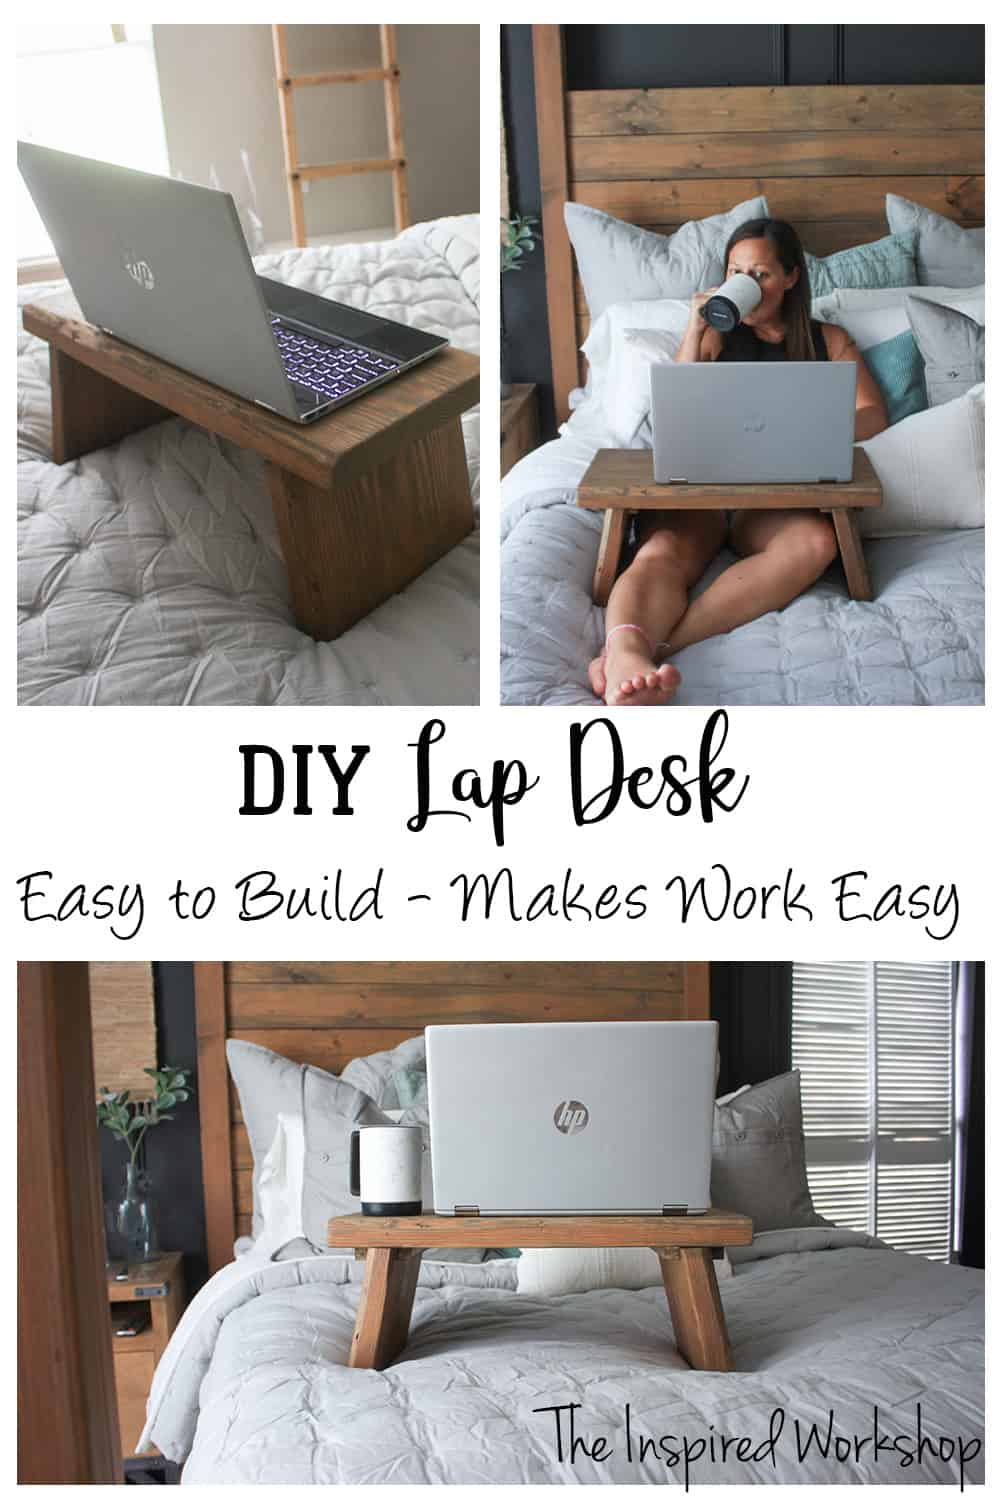 DIY Lap Desk - Quick and easy build to help you get work done from bed!